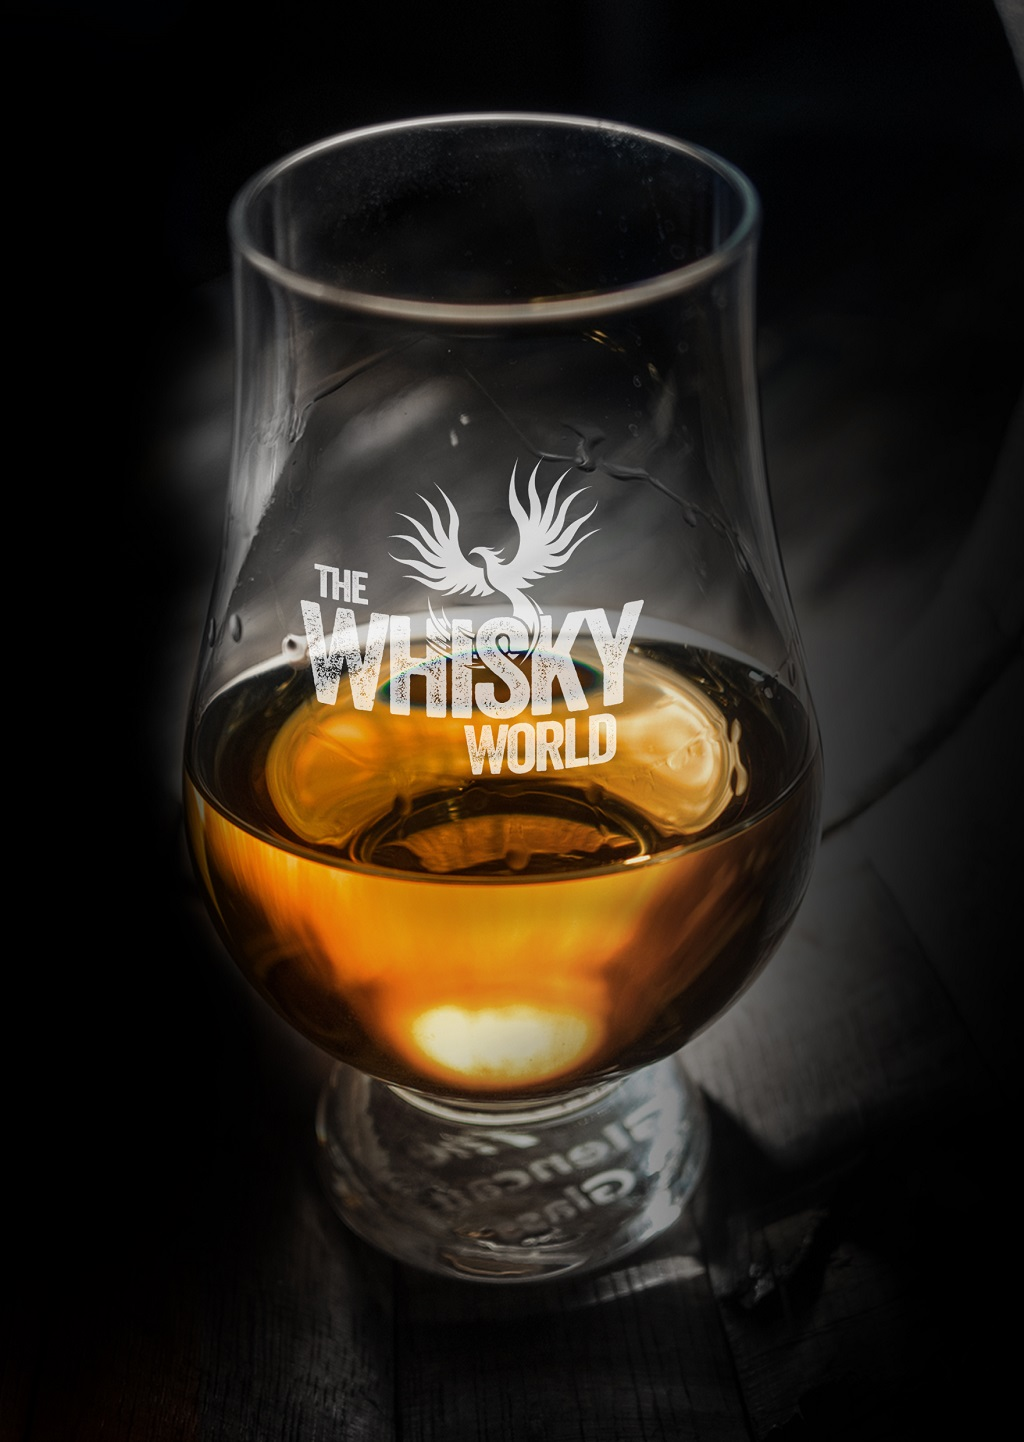 Scotch Whisky At The Centre Of A Worldwide Celebration photo